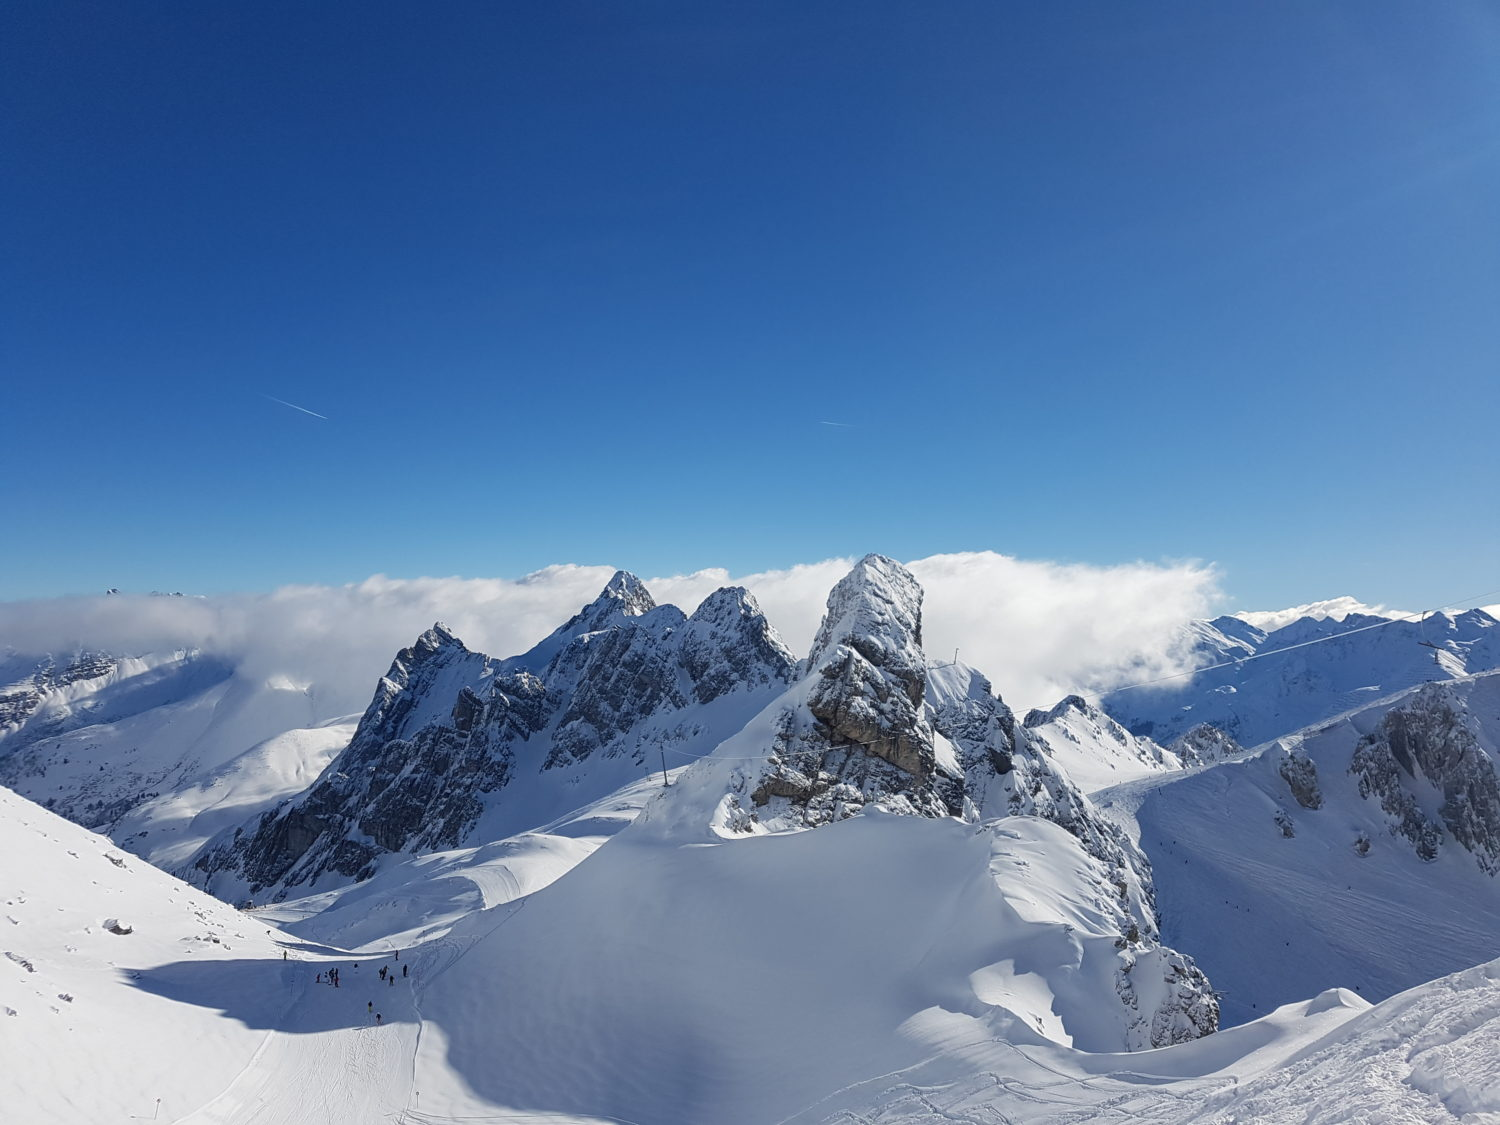 View from Valuga, St.Anton